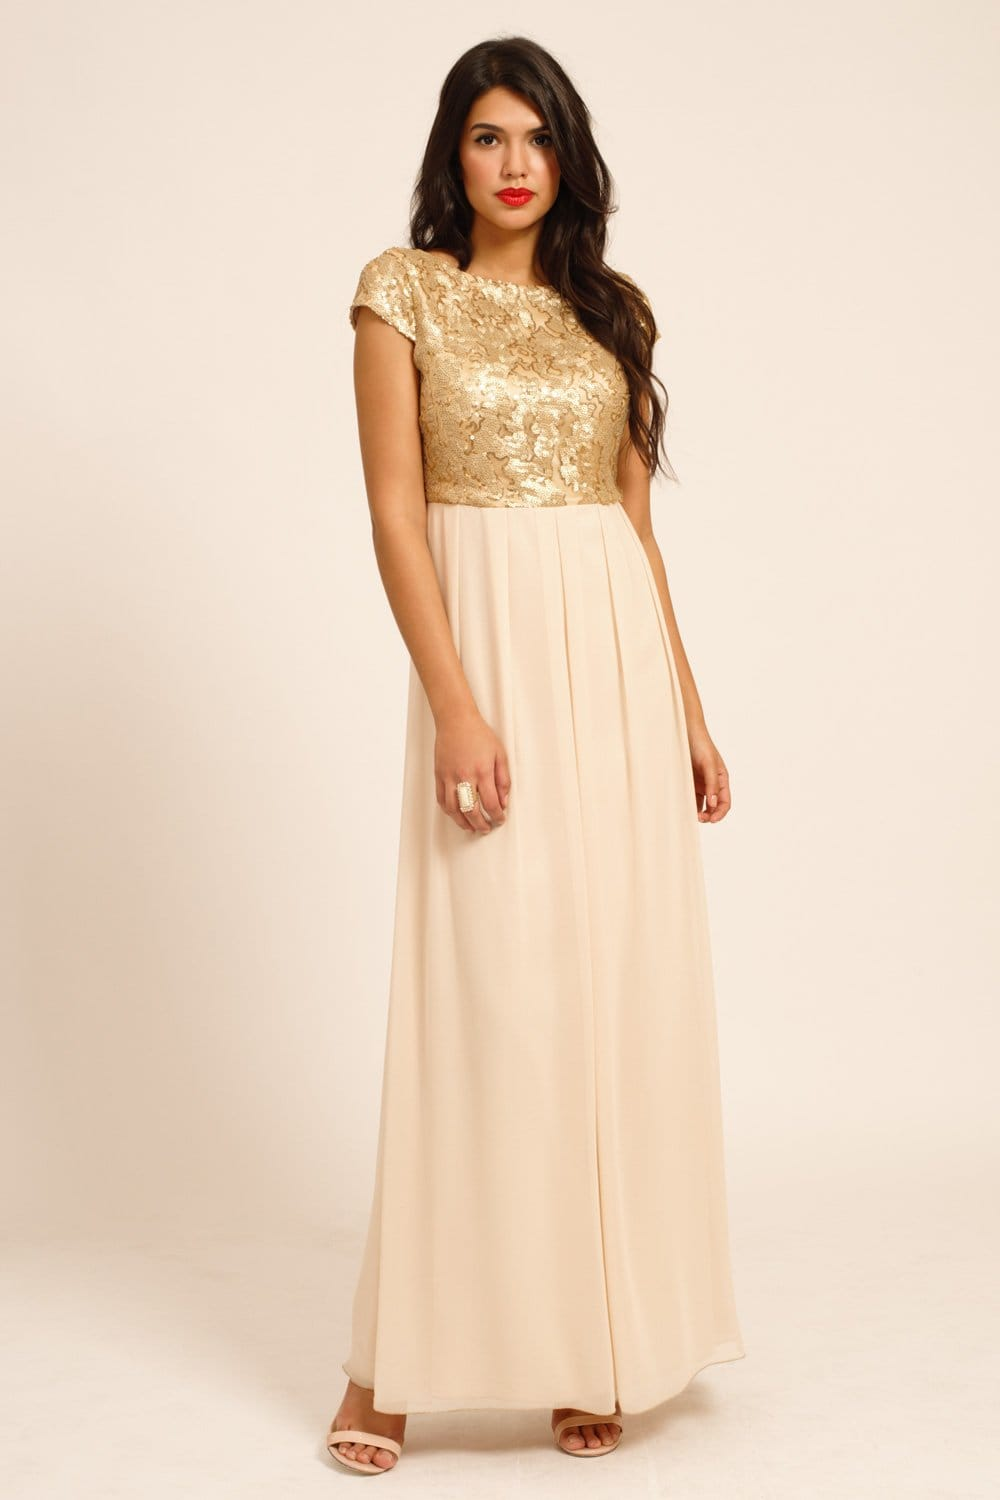 Gold Amp Cream Heavily Embellished Cap Sleeve Maxi Dress